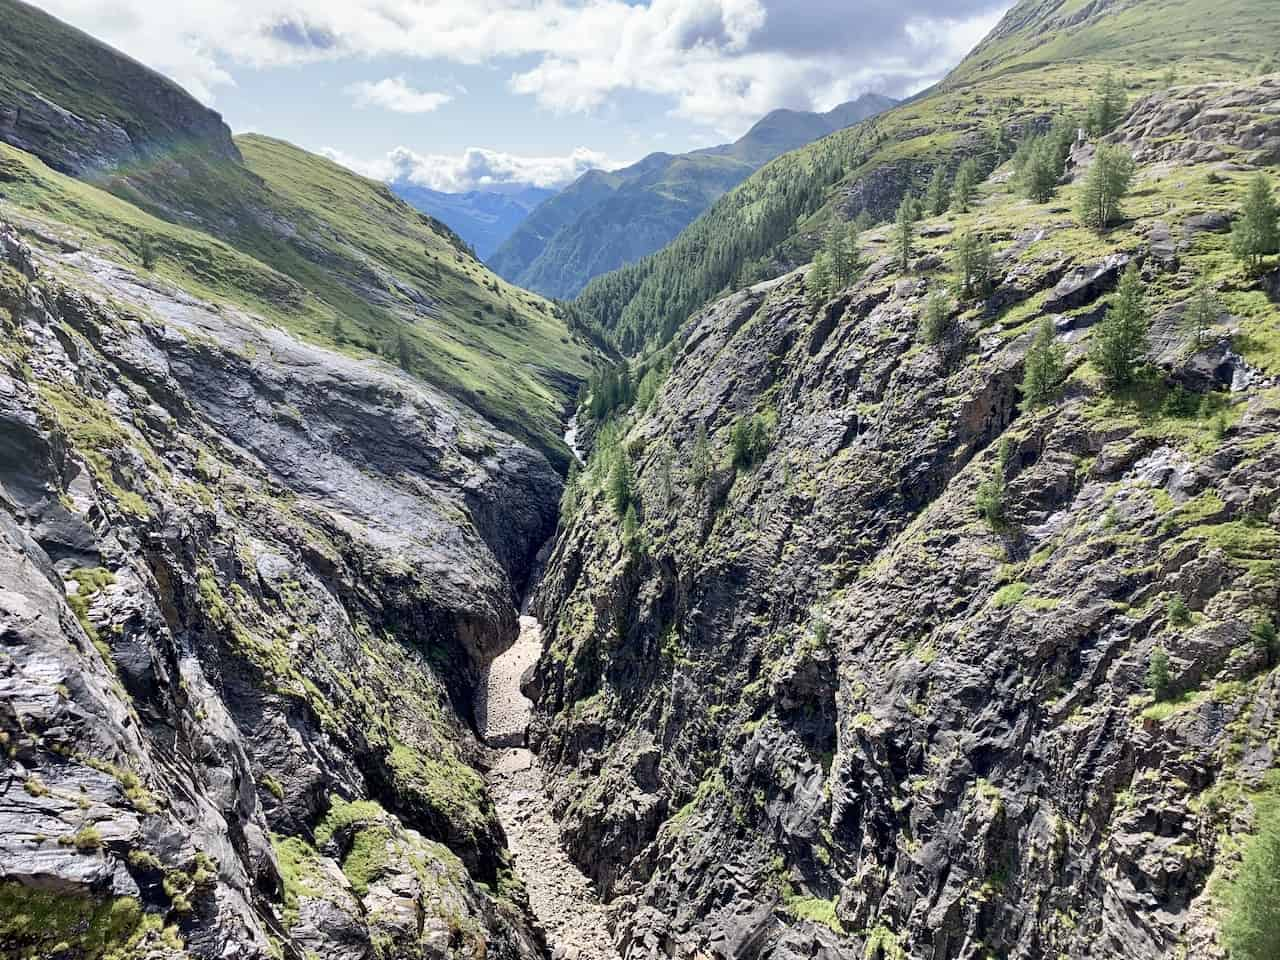 Grossglockner Hiking Trail